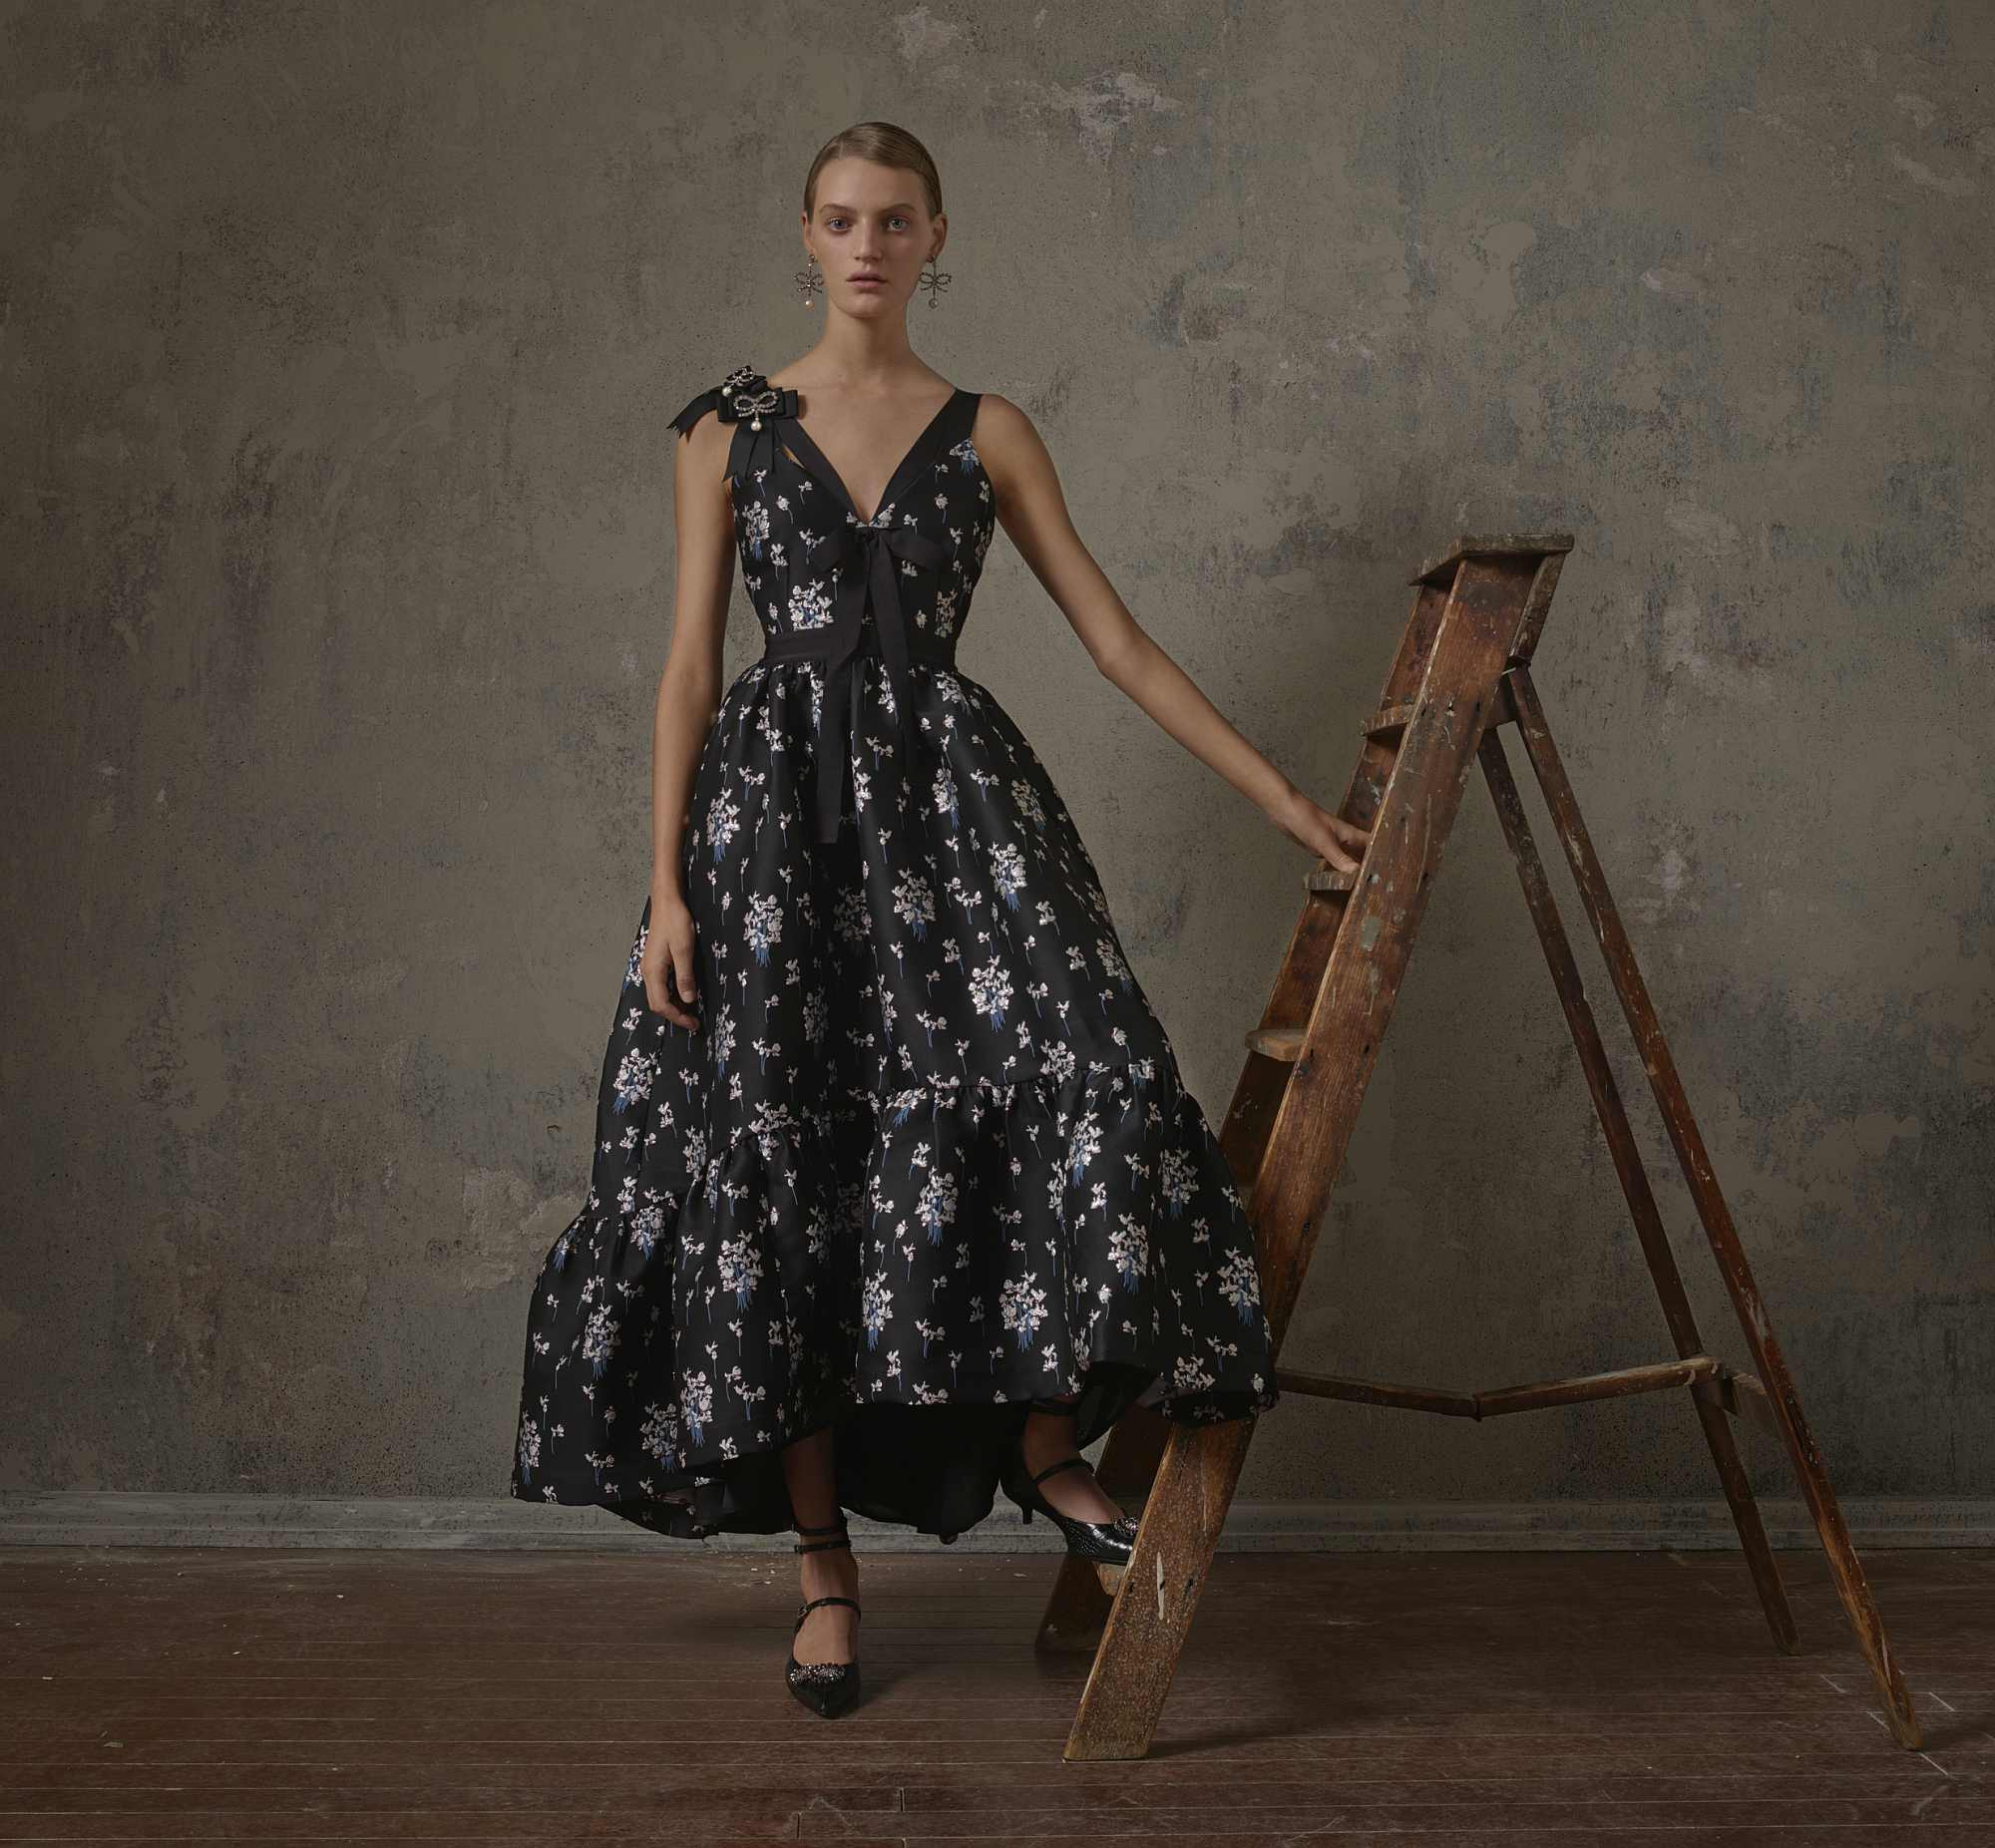 H&M x Erdem Black maxi dress